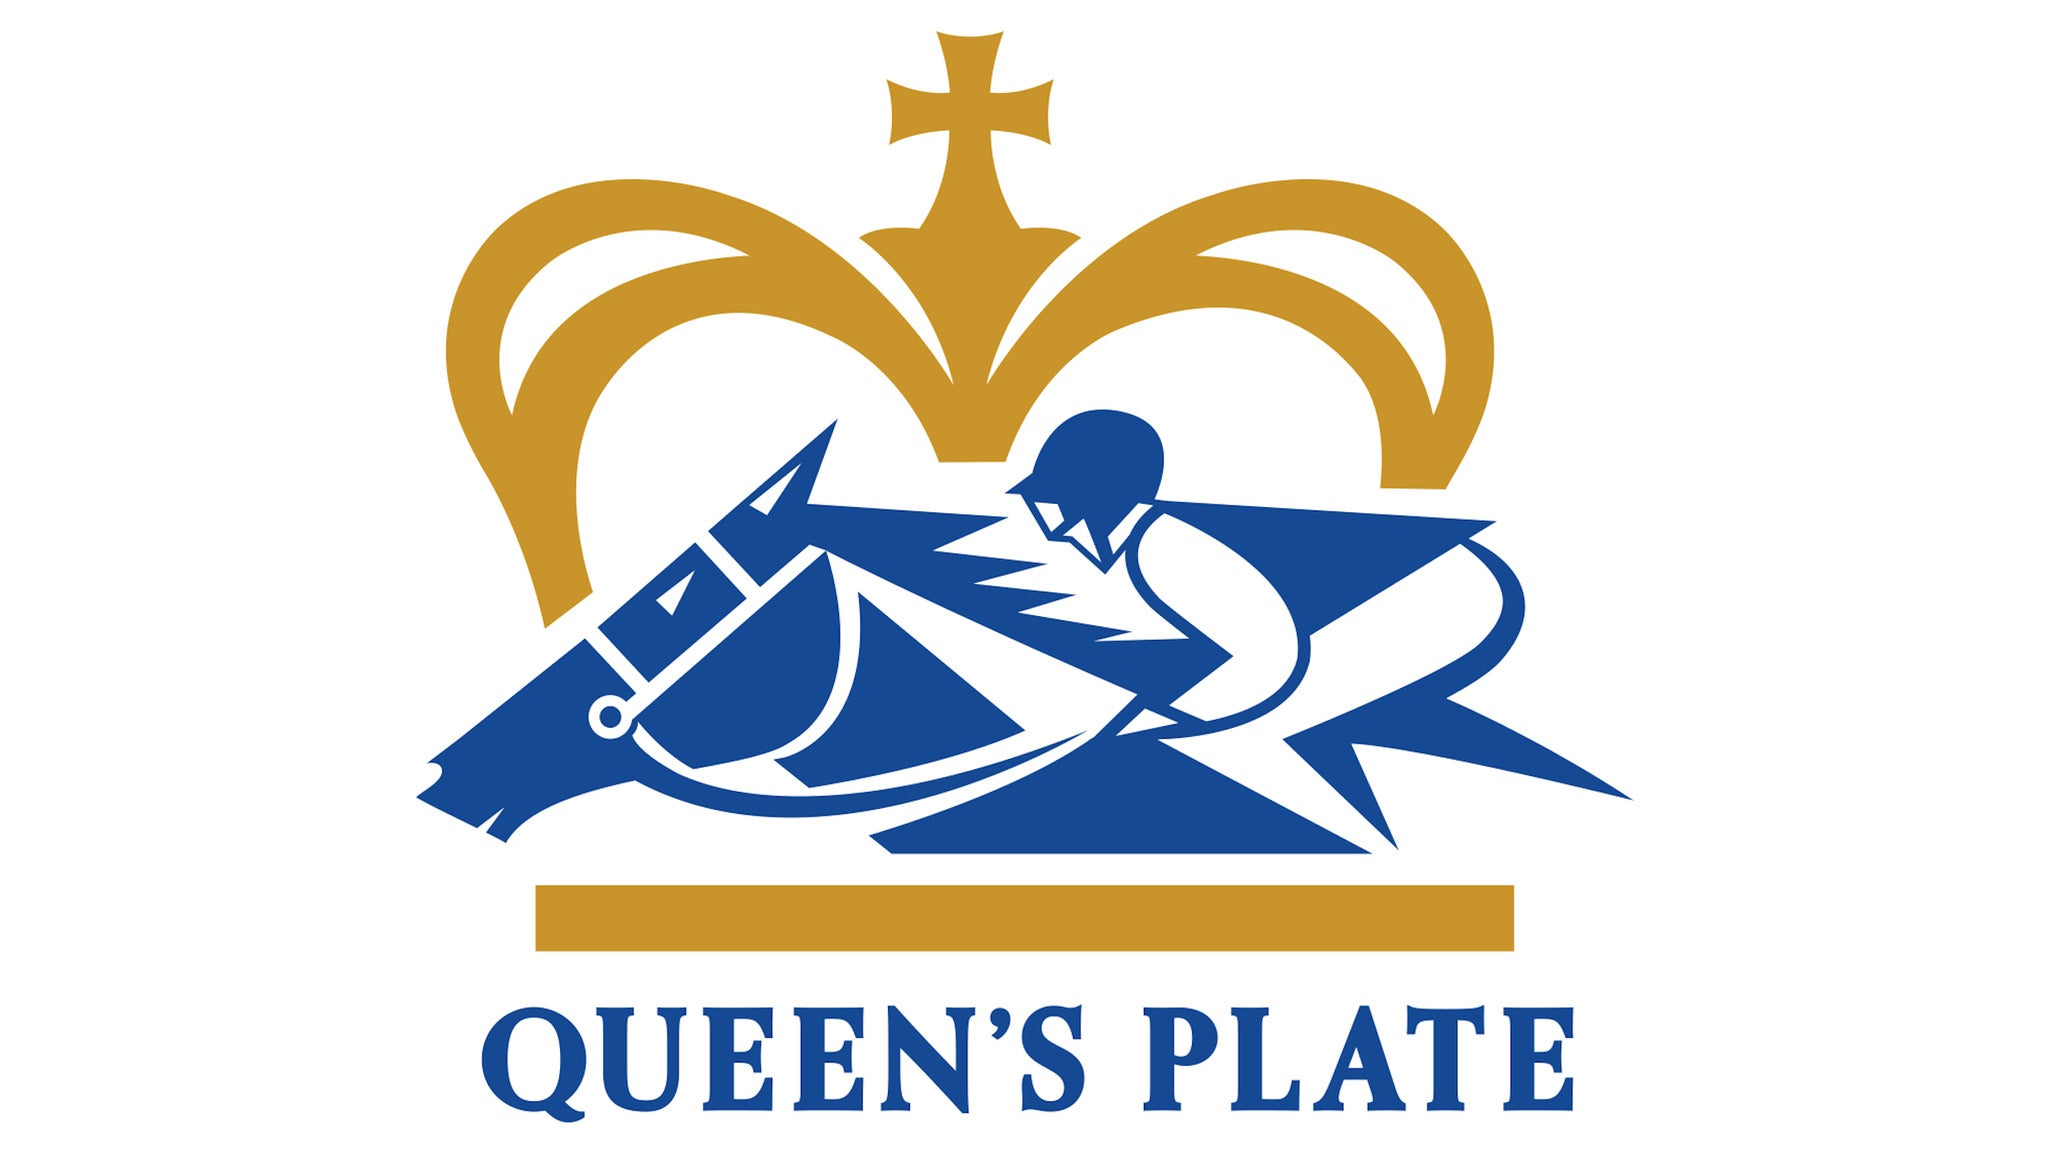 158th Queen's Plate 2 Day Festival at Woodbine Racetrack